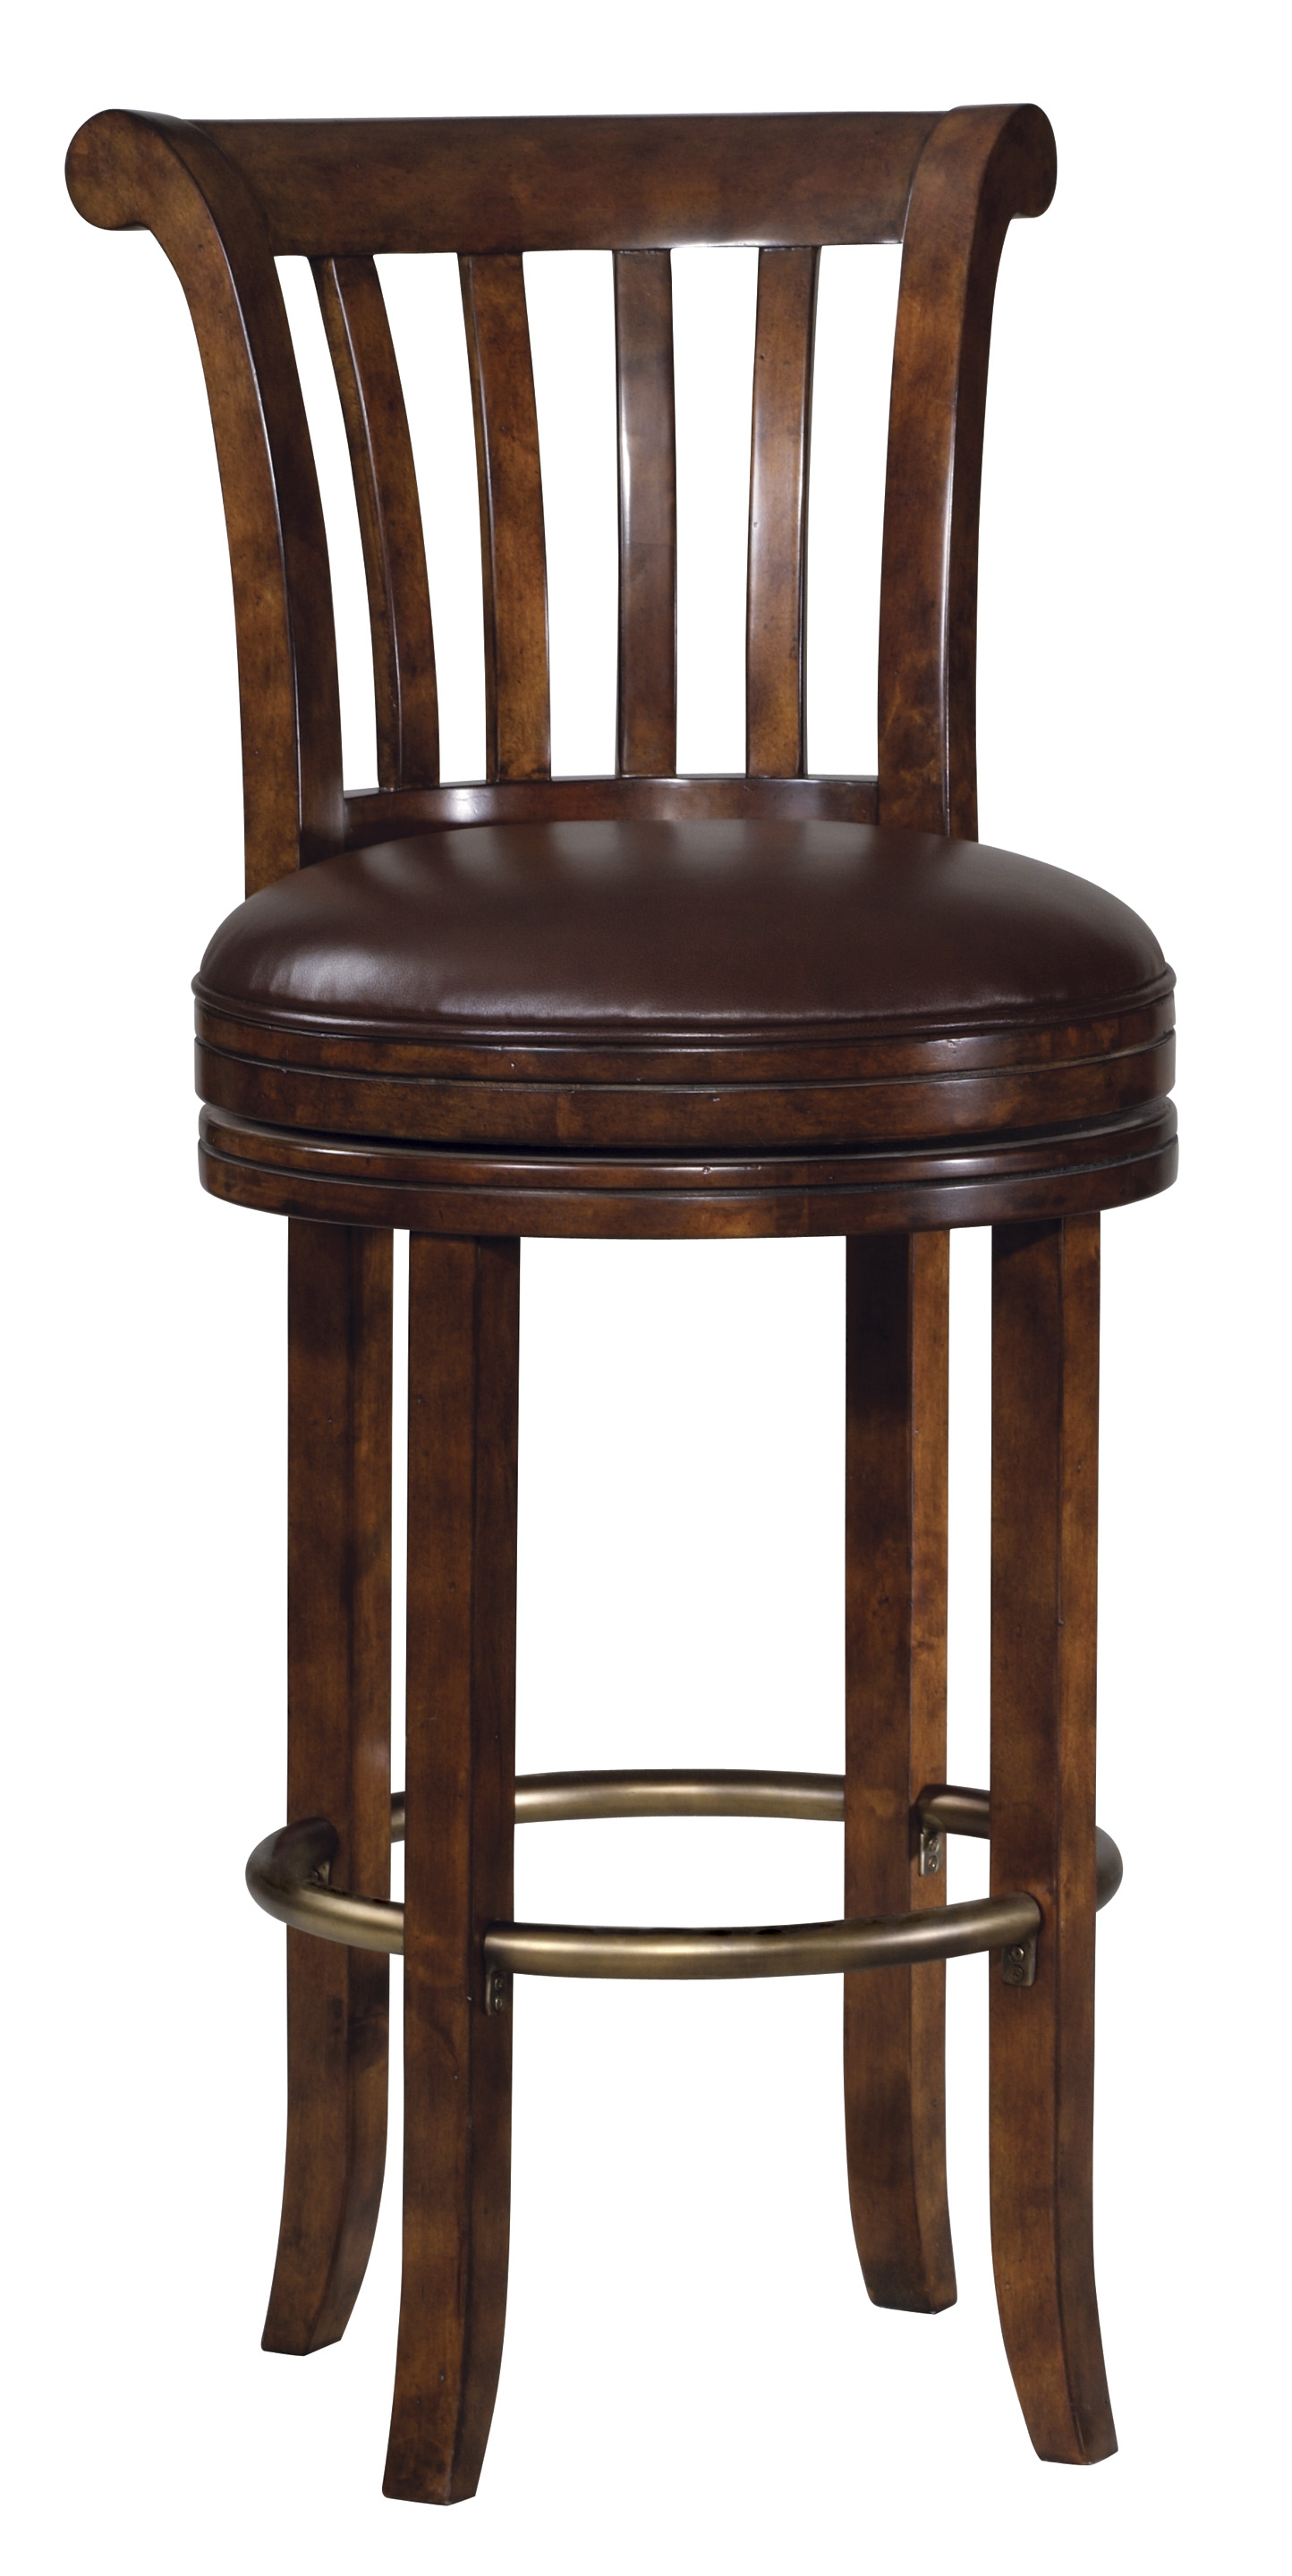 Modern solid Wood Bar Stool